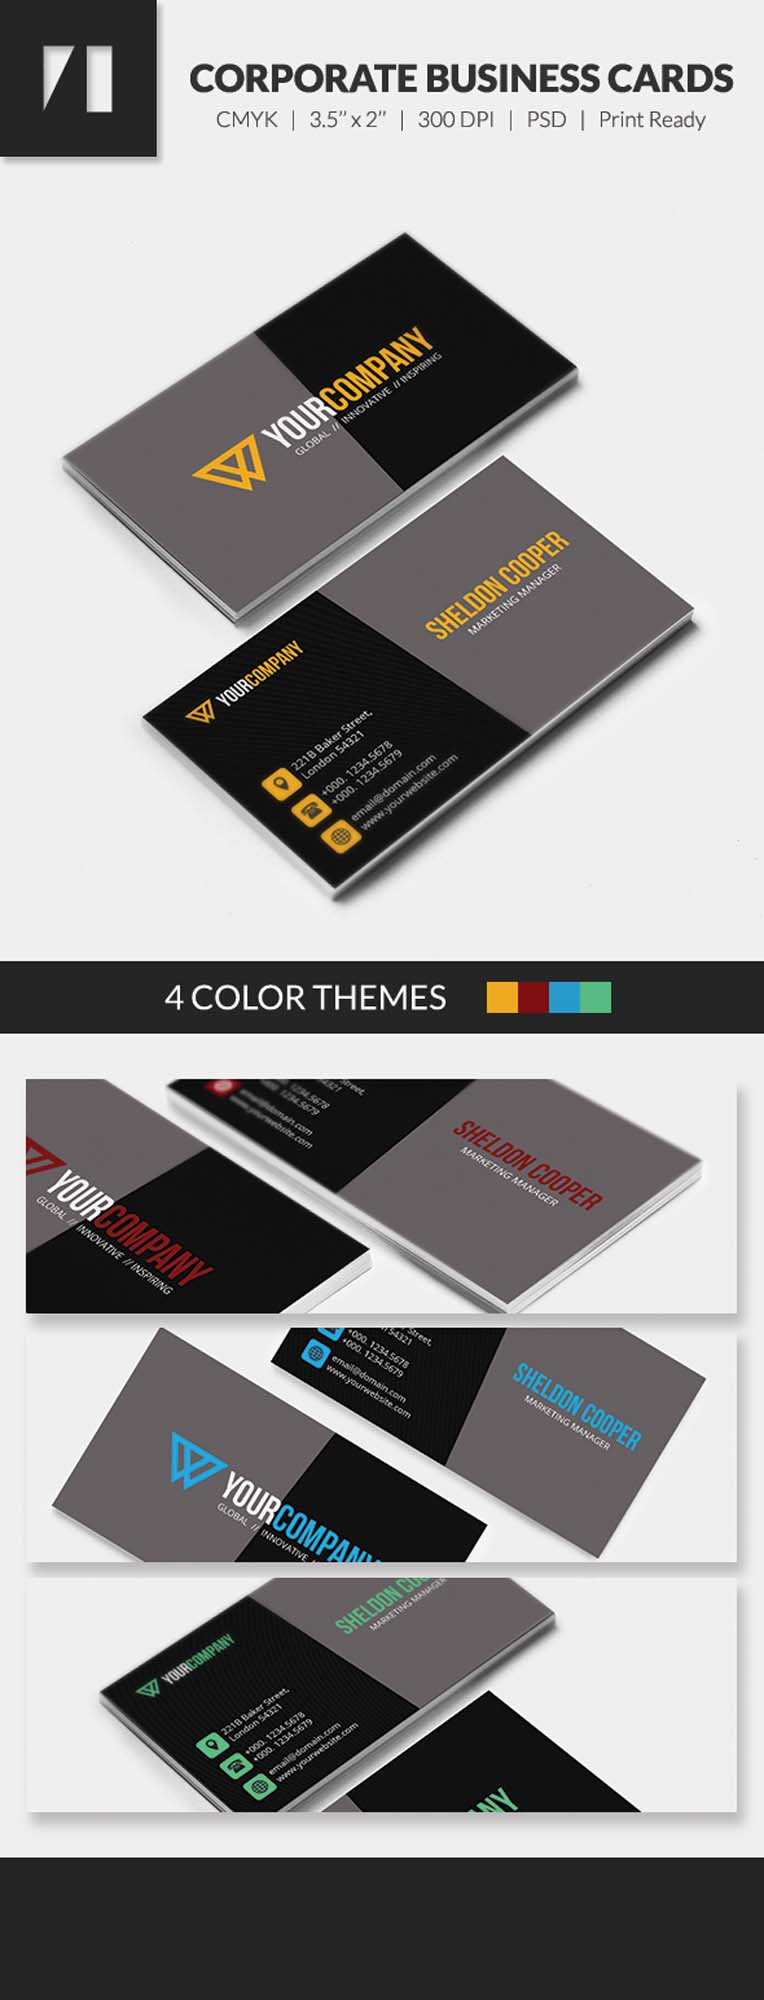 Free PSD - Corporate Business Cards - Dark